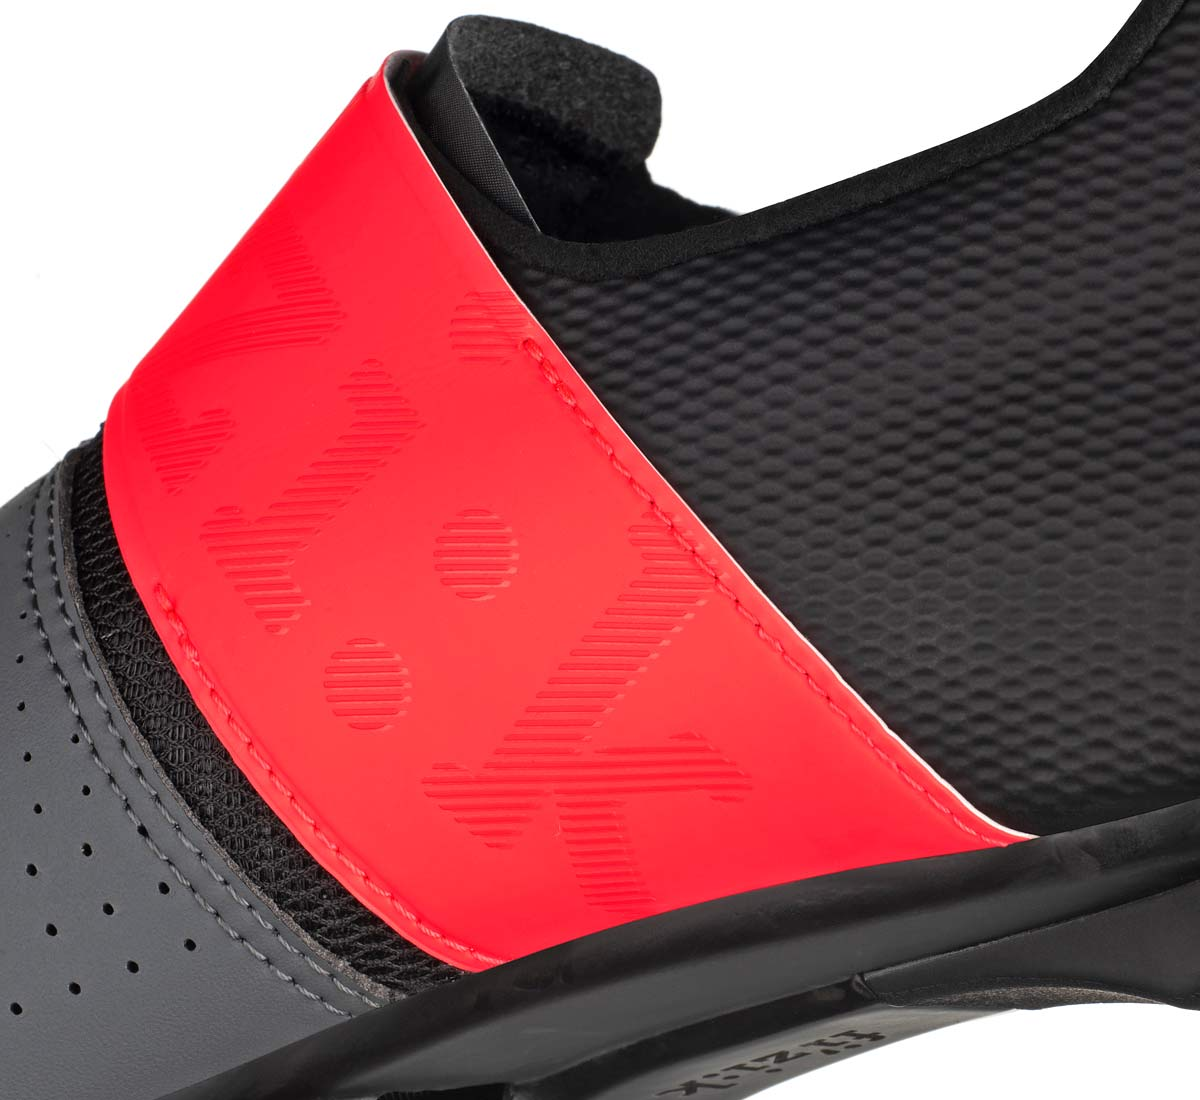 Fizik-Vento-Infinito-Carbon-2-road-shoes_lightweight-breathable-stiff-microtex-or-knit-road-racing-shoes_instep-detail.jpg